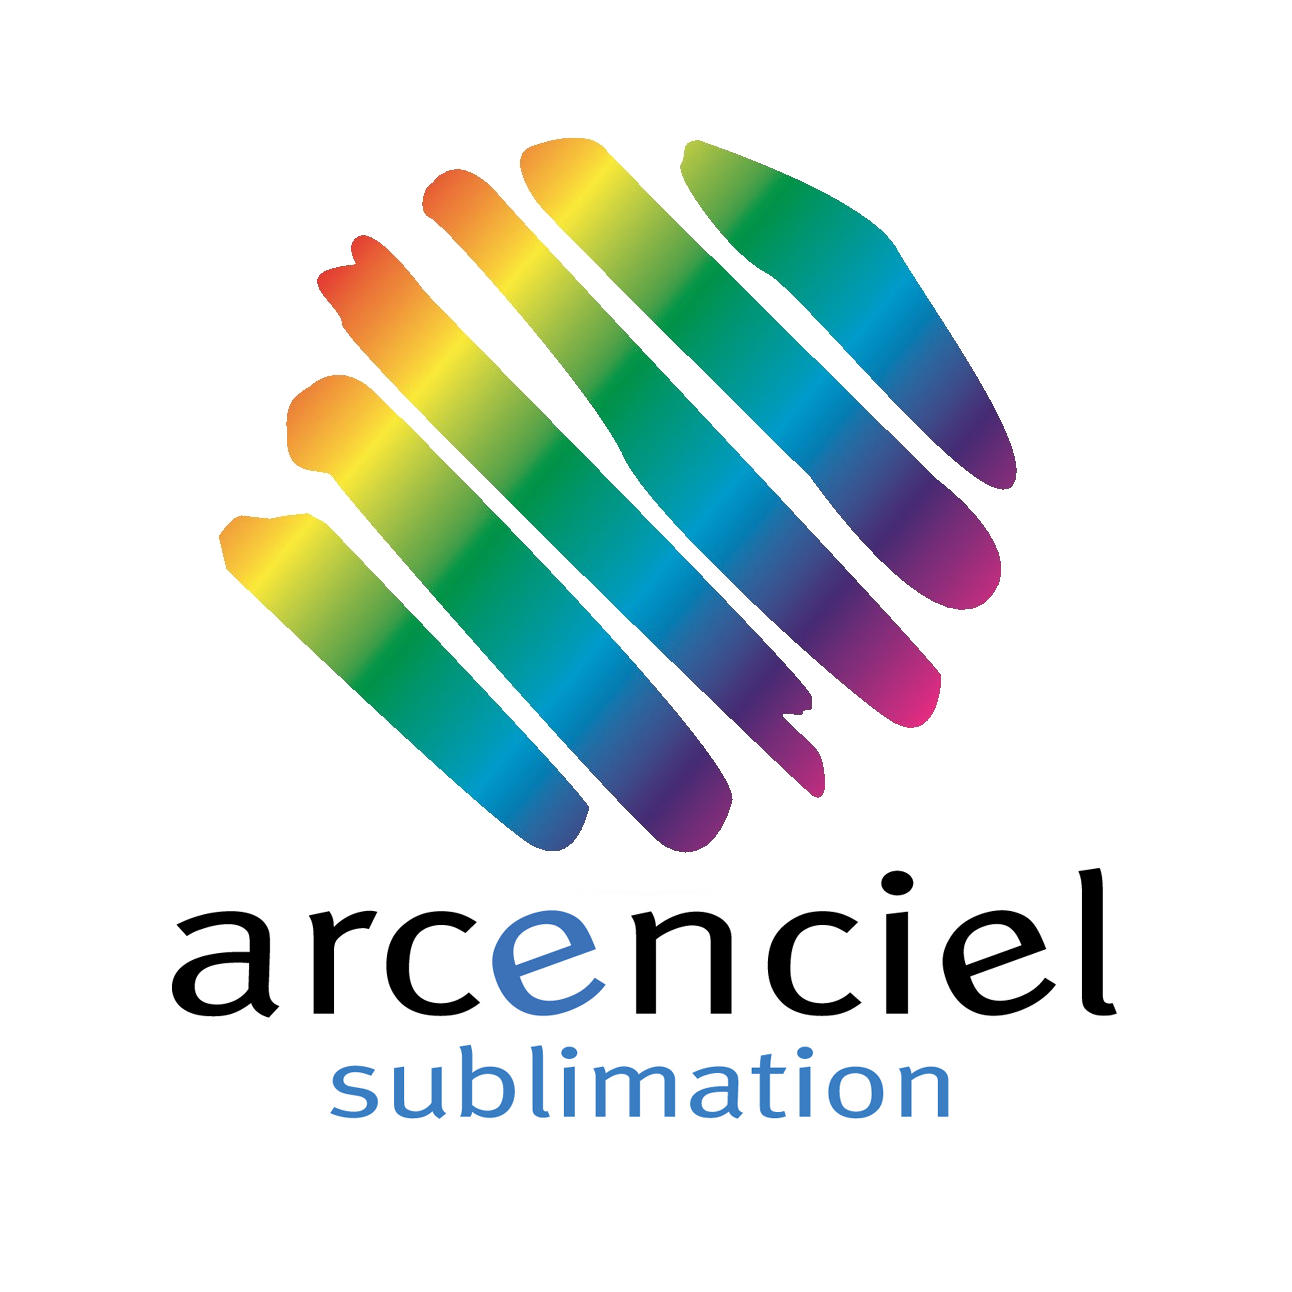 Arcenciel_sublimation